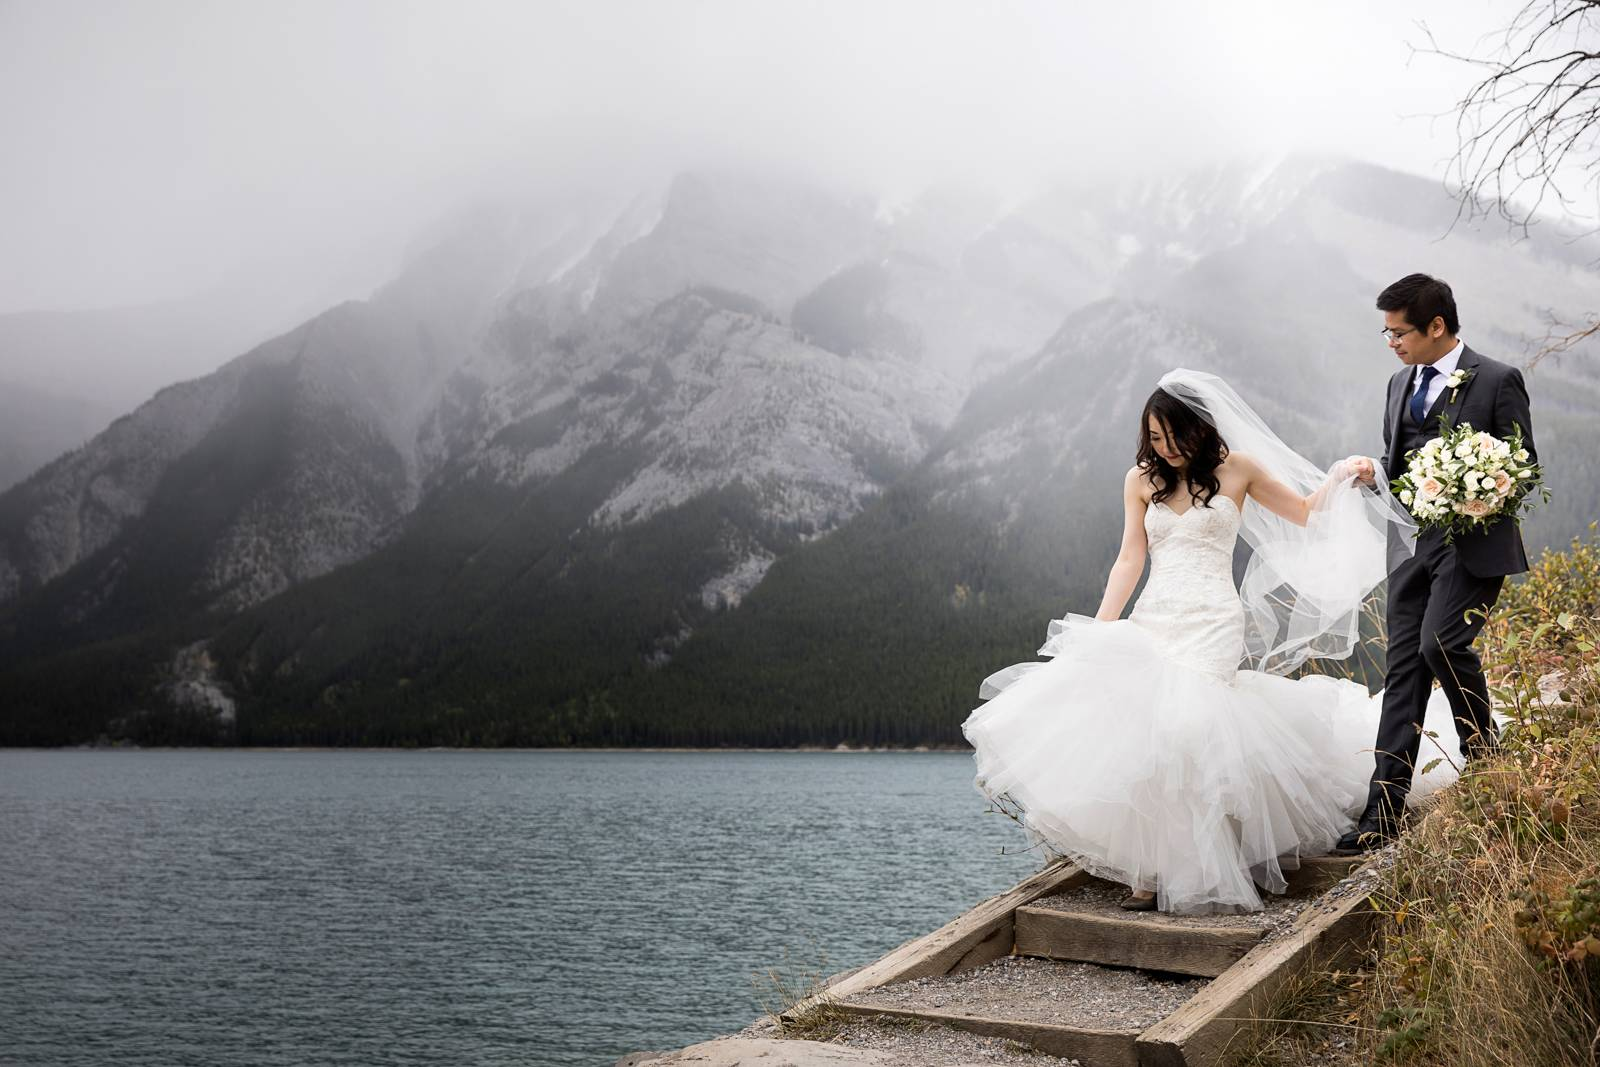 Lake Minnewanka Wedding, Banff Wedding Photographer, Banff wedding, Banff Elopement, Banff Elopement